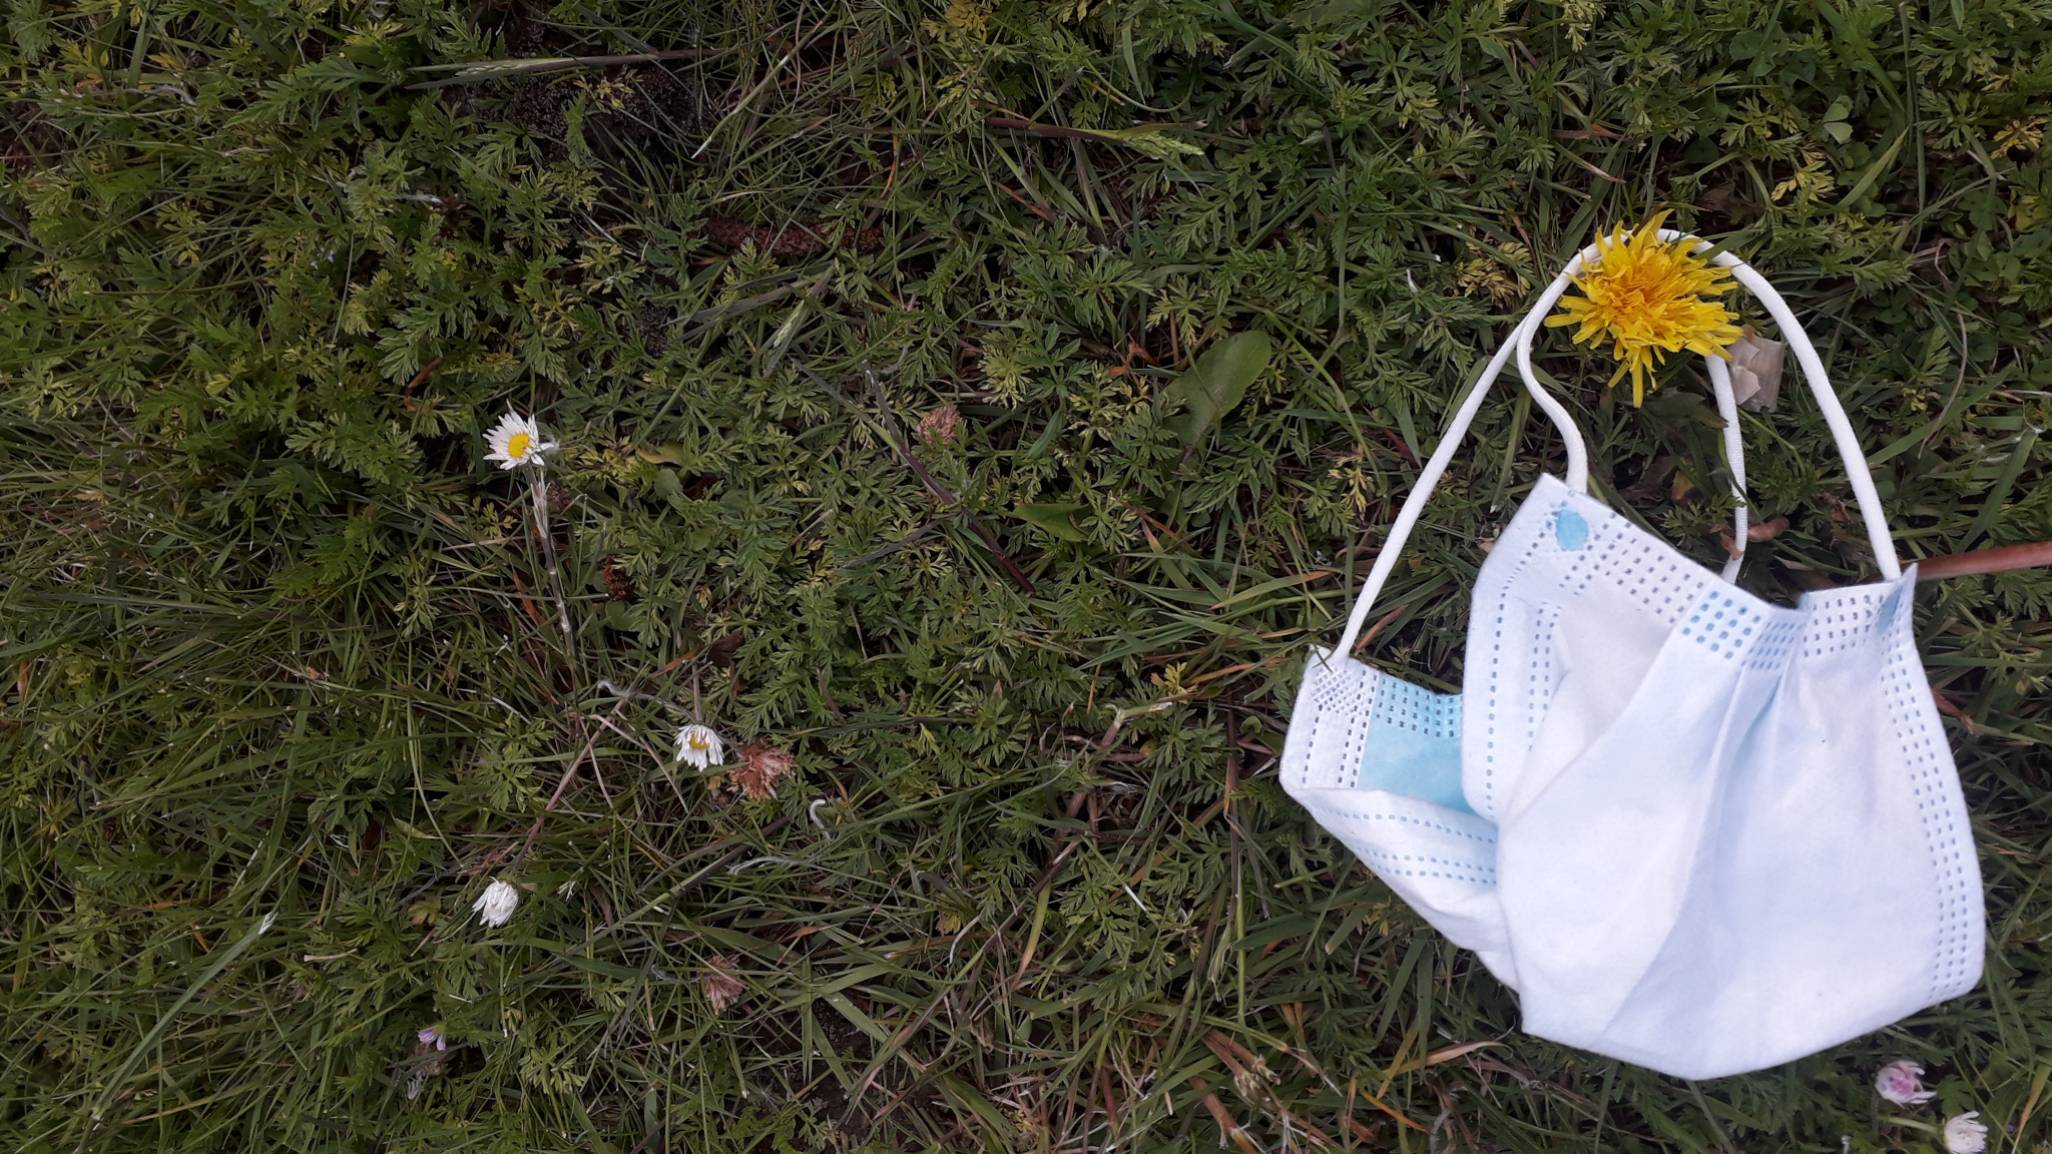 A surgical mask on some grass next to some daisies